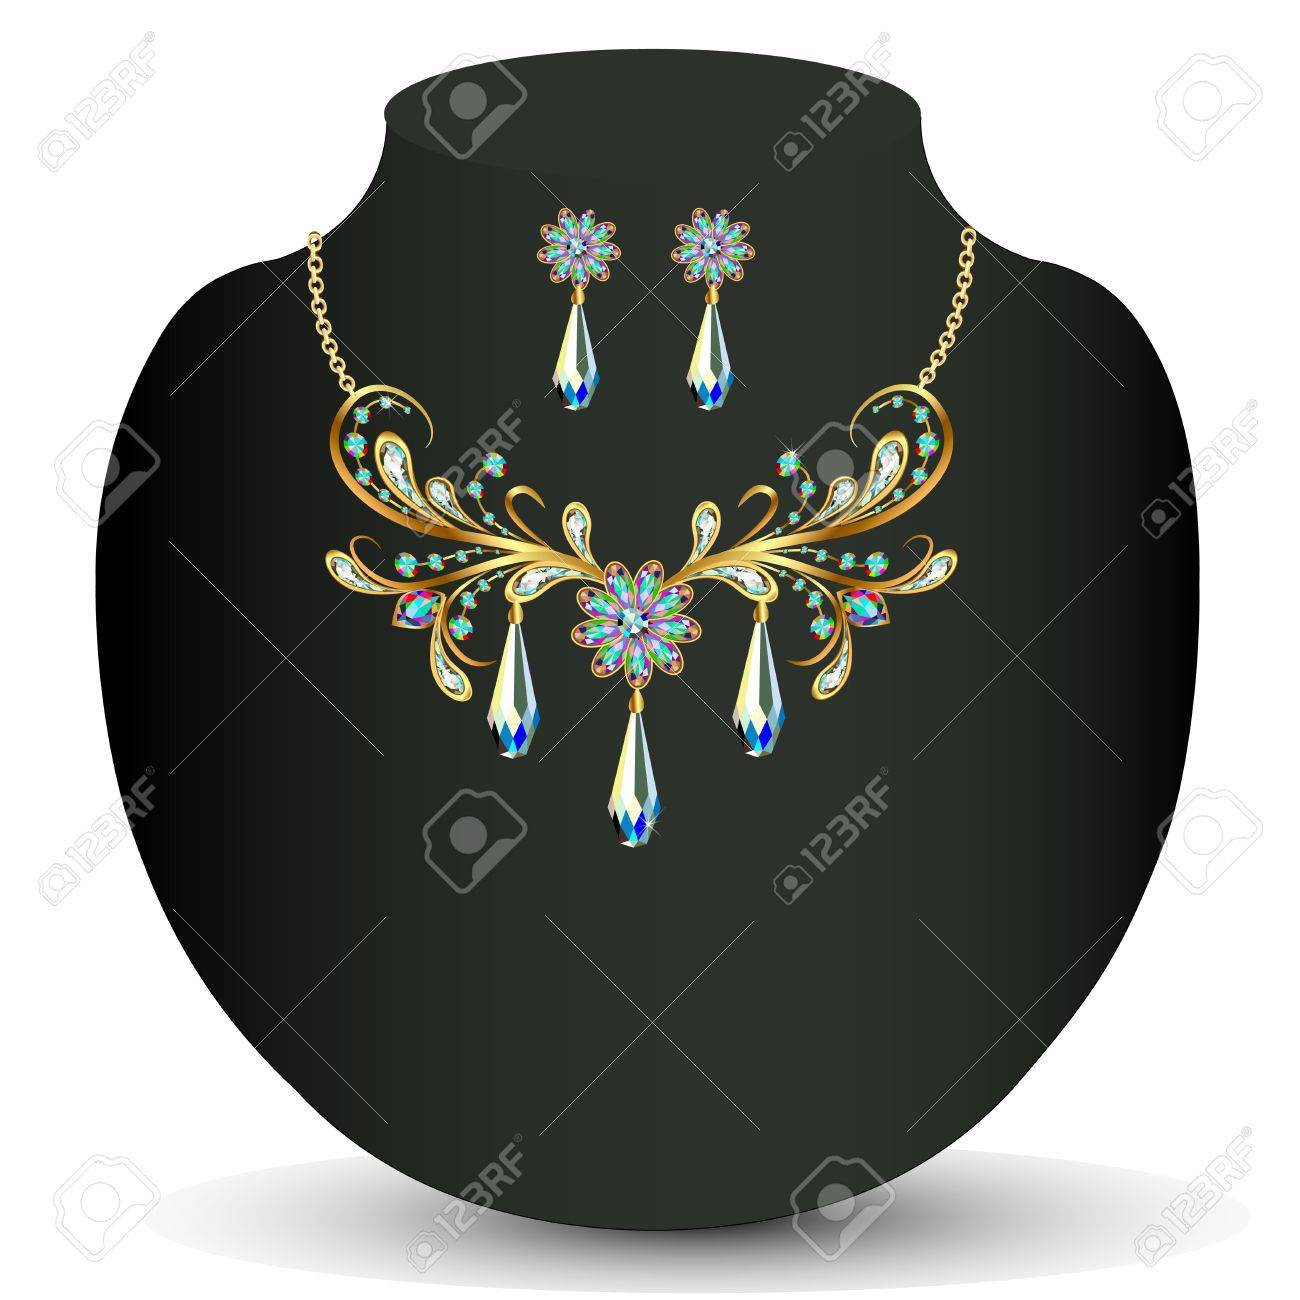 illustration of a Golden necklace and earrings women's wedding with precious stones Stock Vector - 20212543